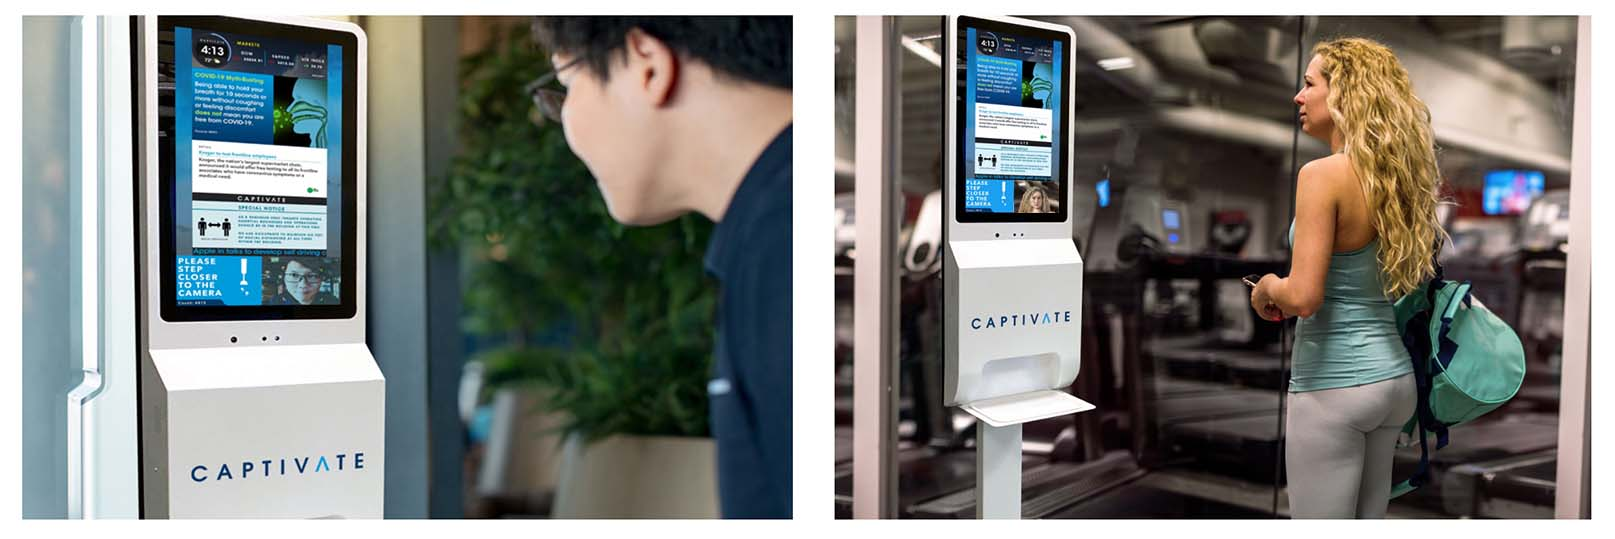 Captivate Residential - Digital Communication and Hand Sanitizer Dispenser